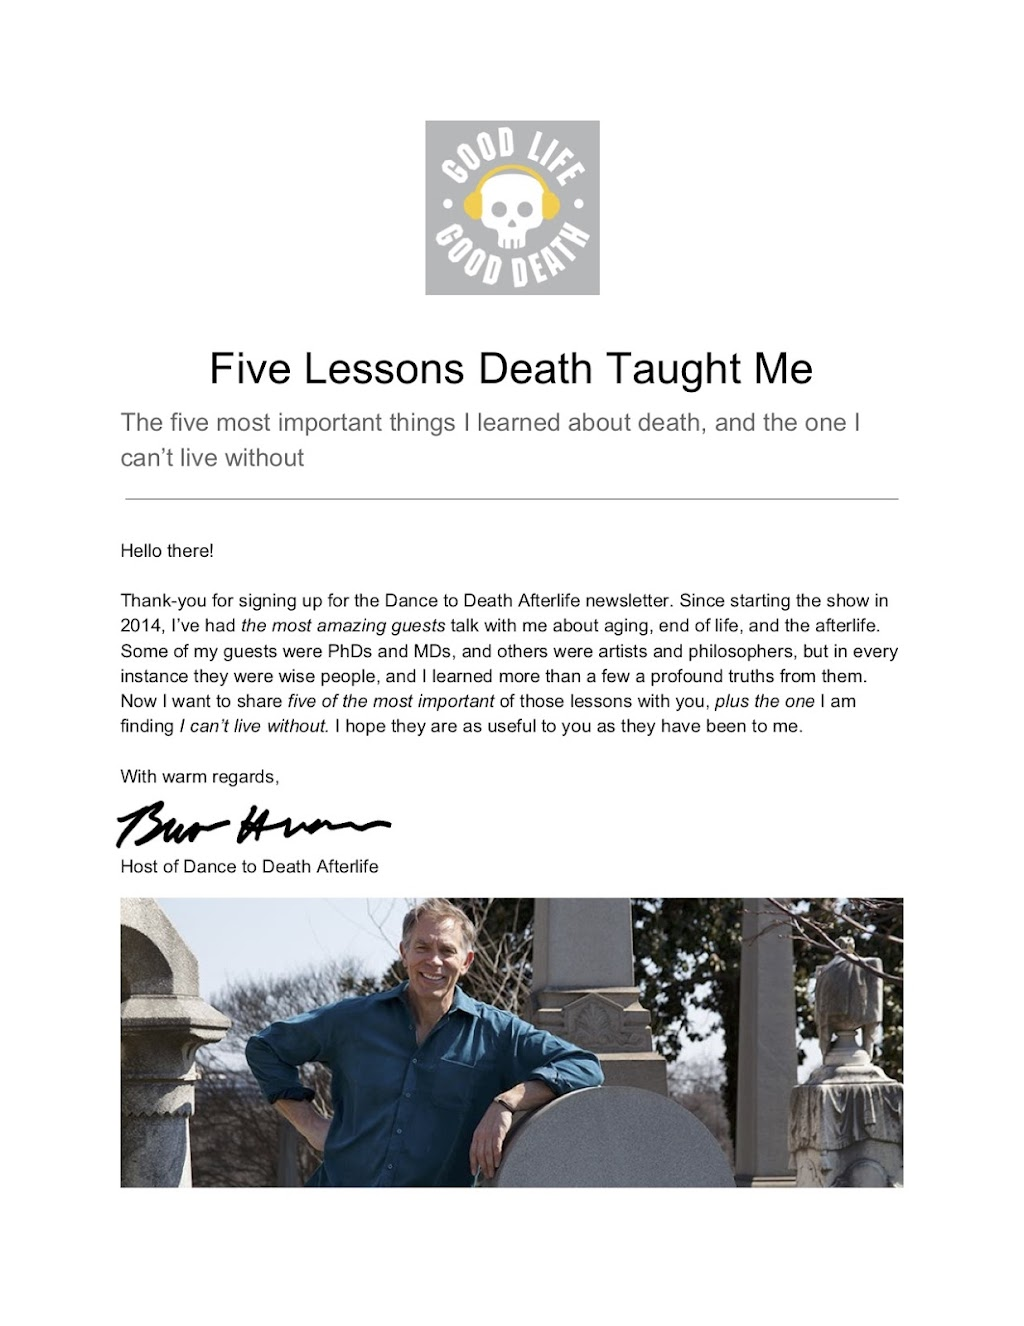 Lessons from Death